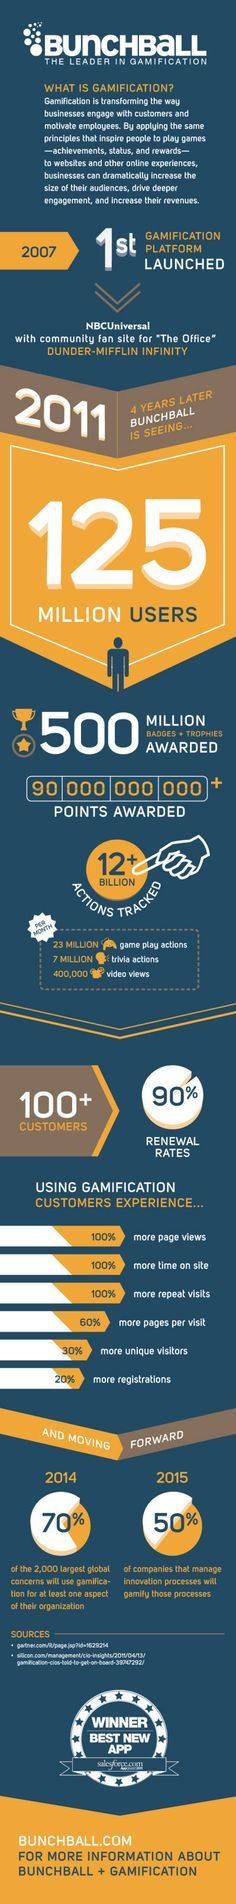 Bunchball, one of the market leaders in gamification platforms has now 125 Millions of users around the world